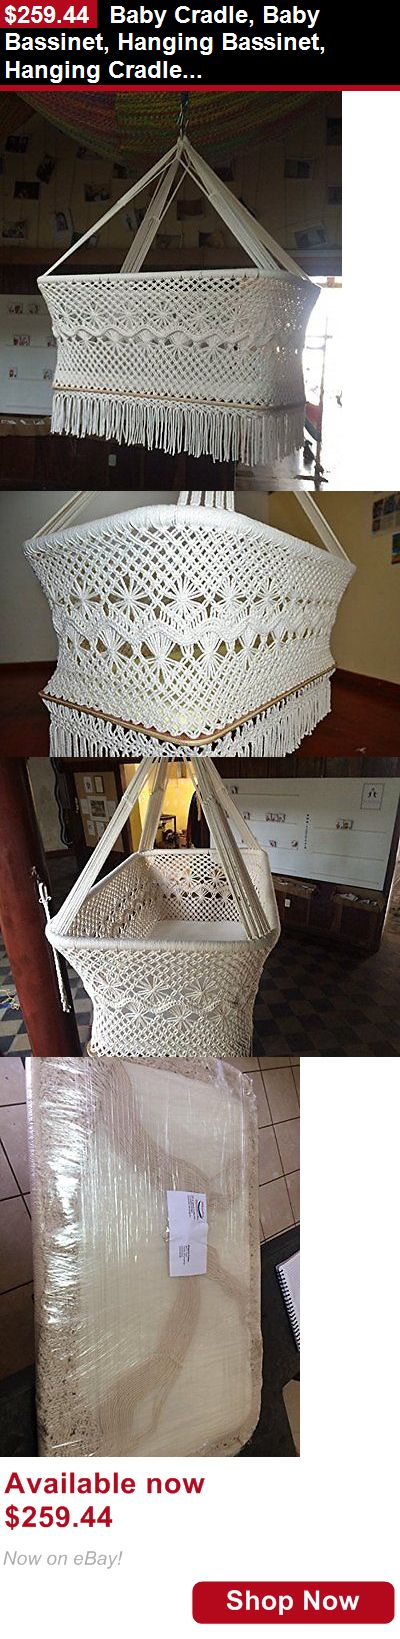 Other Baby: Baby Cradle, Baby Bassinet, Hanging Bassinet, Hanging Cradle, Hanging Crib 100% BUY IT NOW ONLY: $259.44